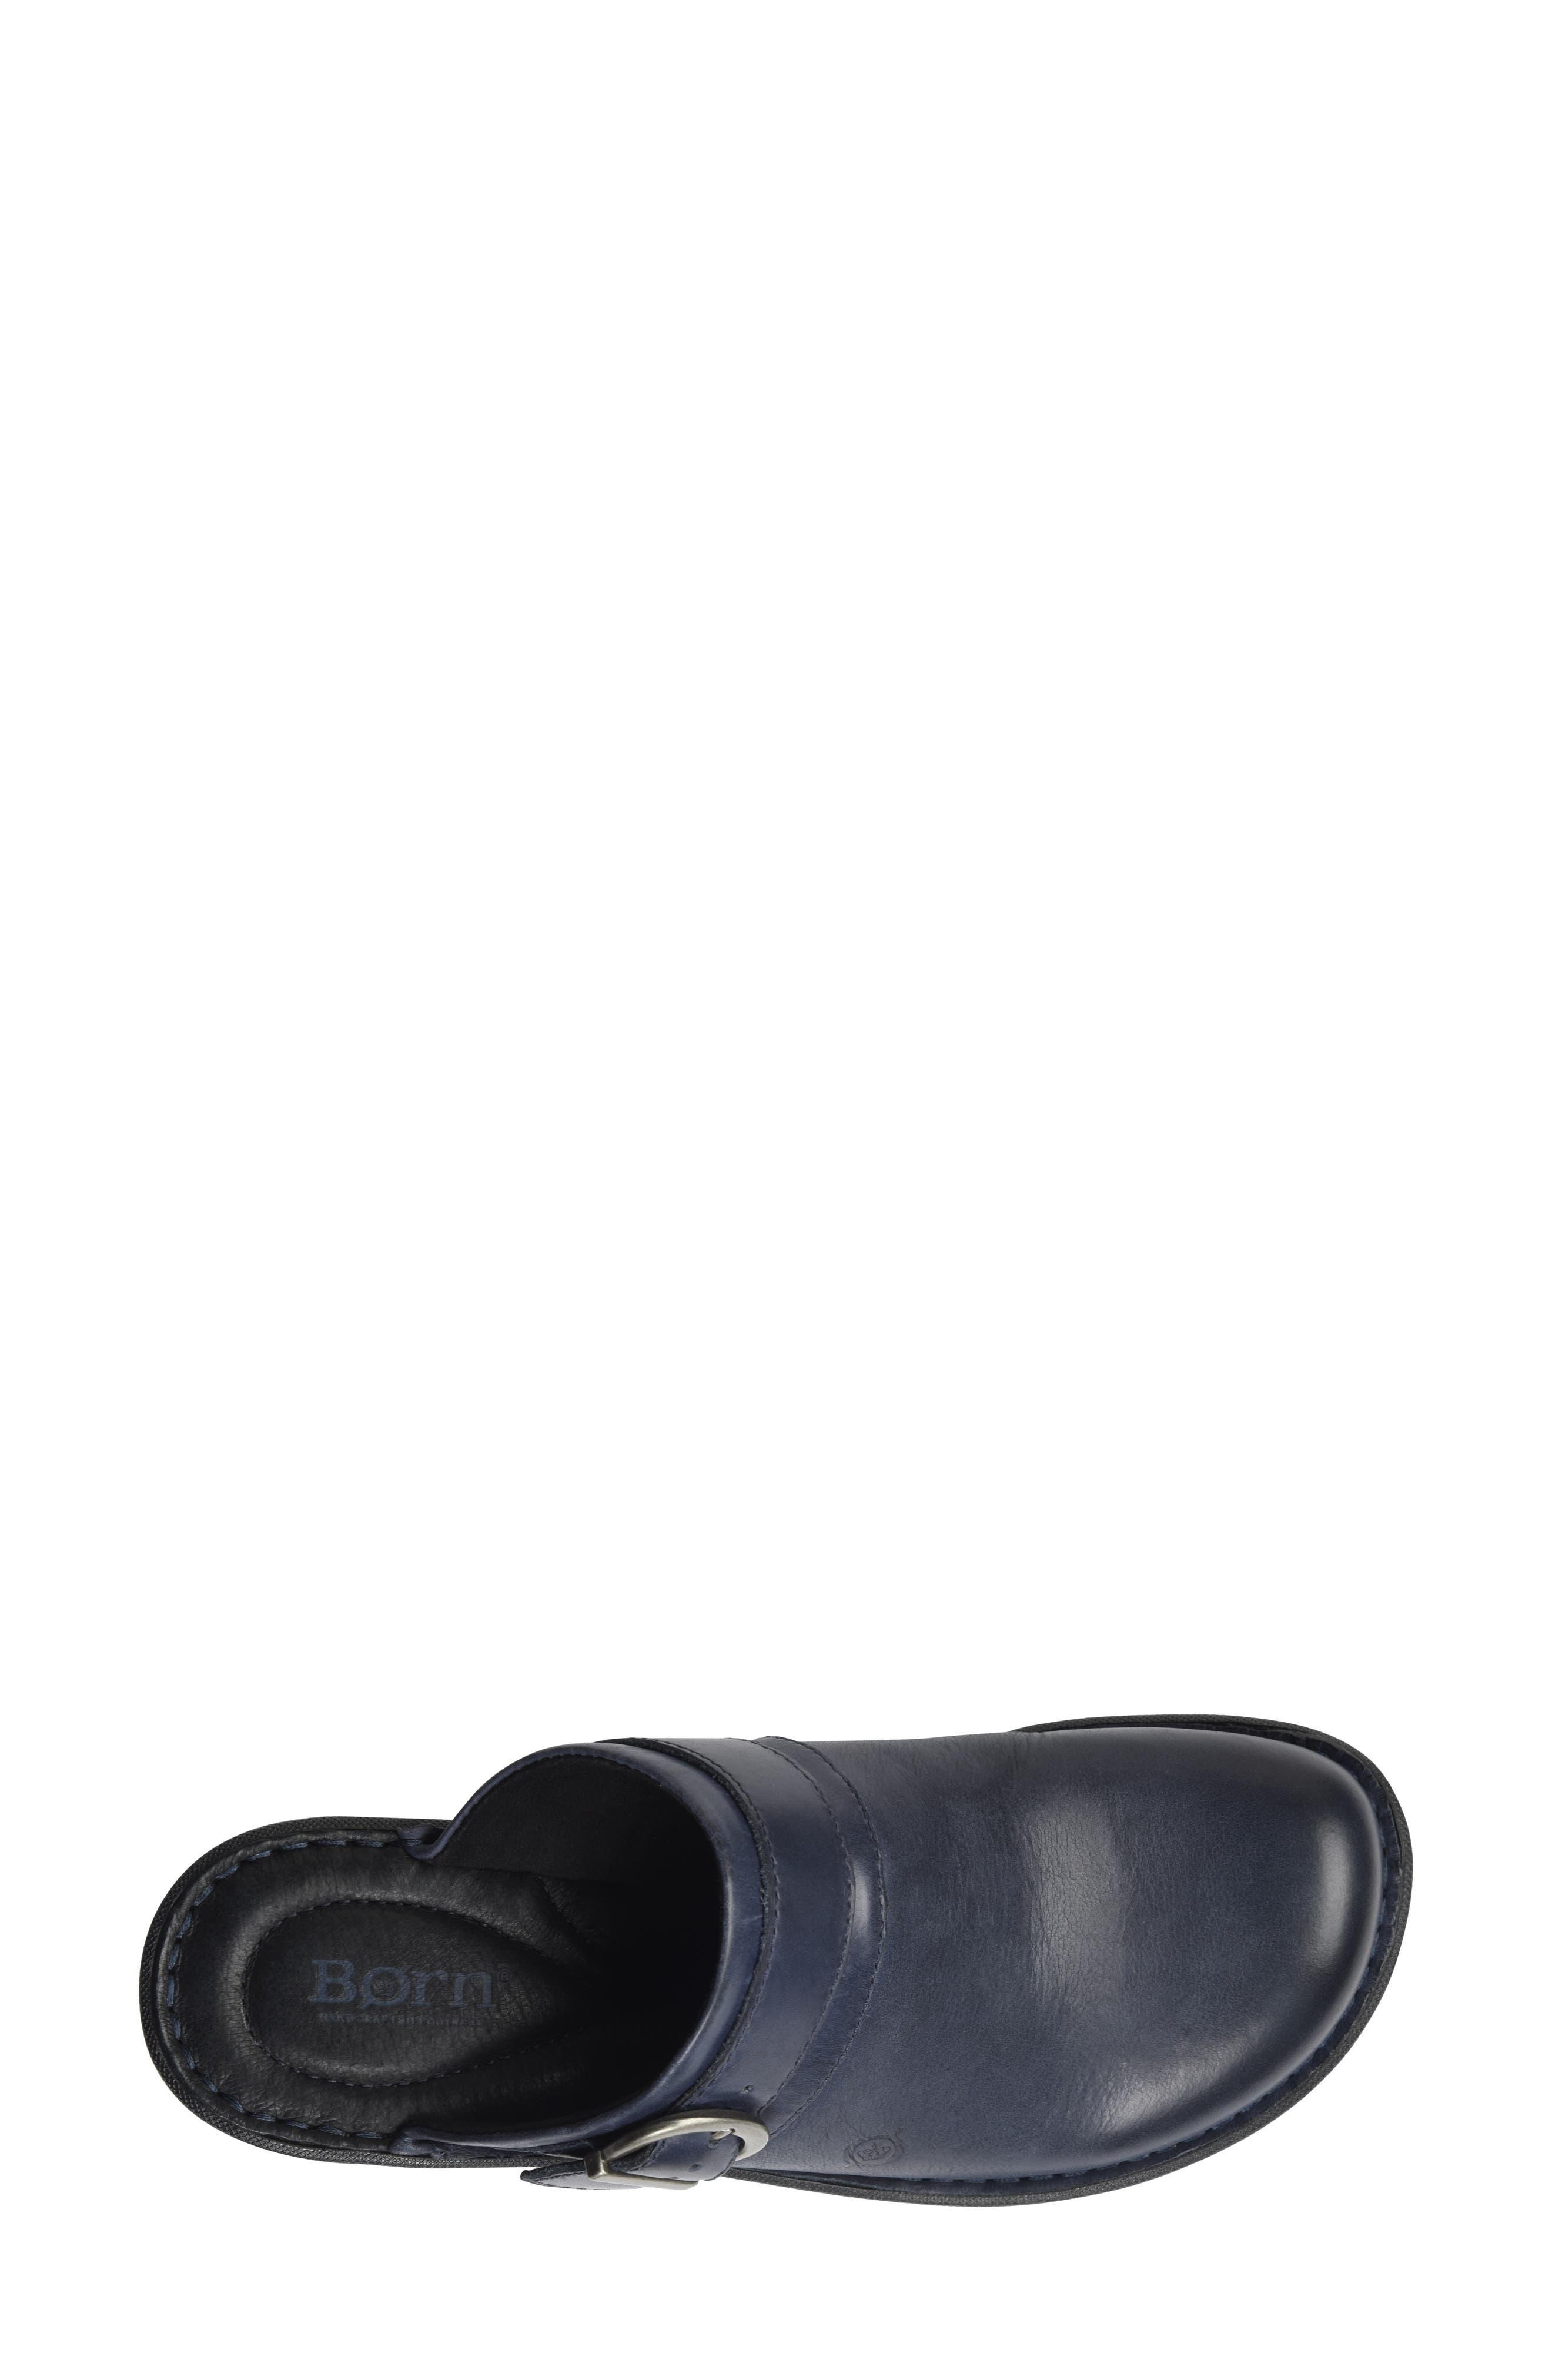 Avoca Clog,                             Alternate thumbnail 5, color,                             NAVY LEATHER